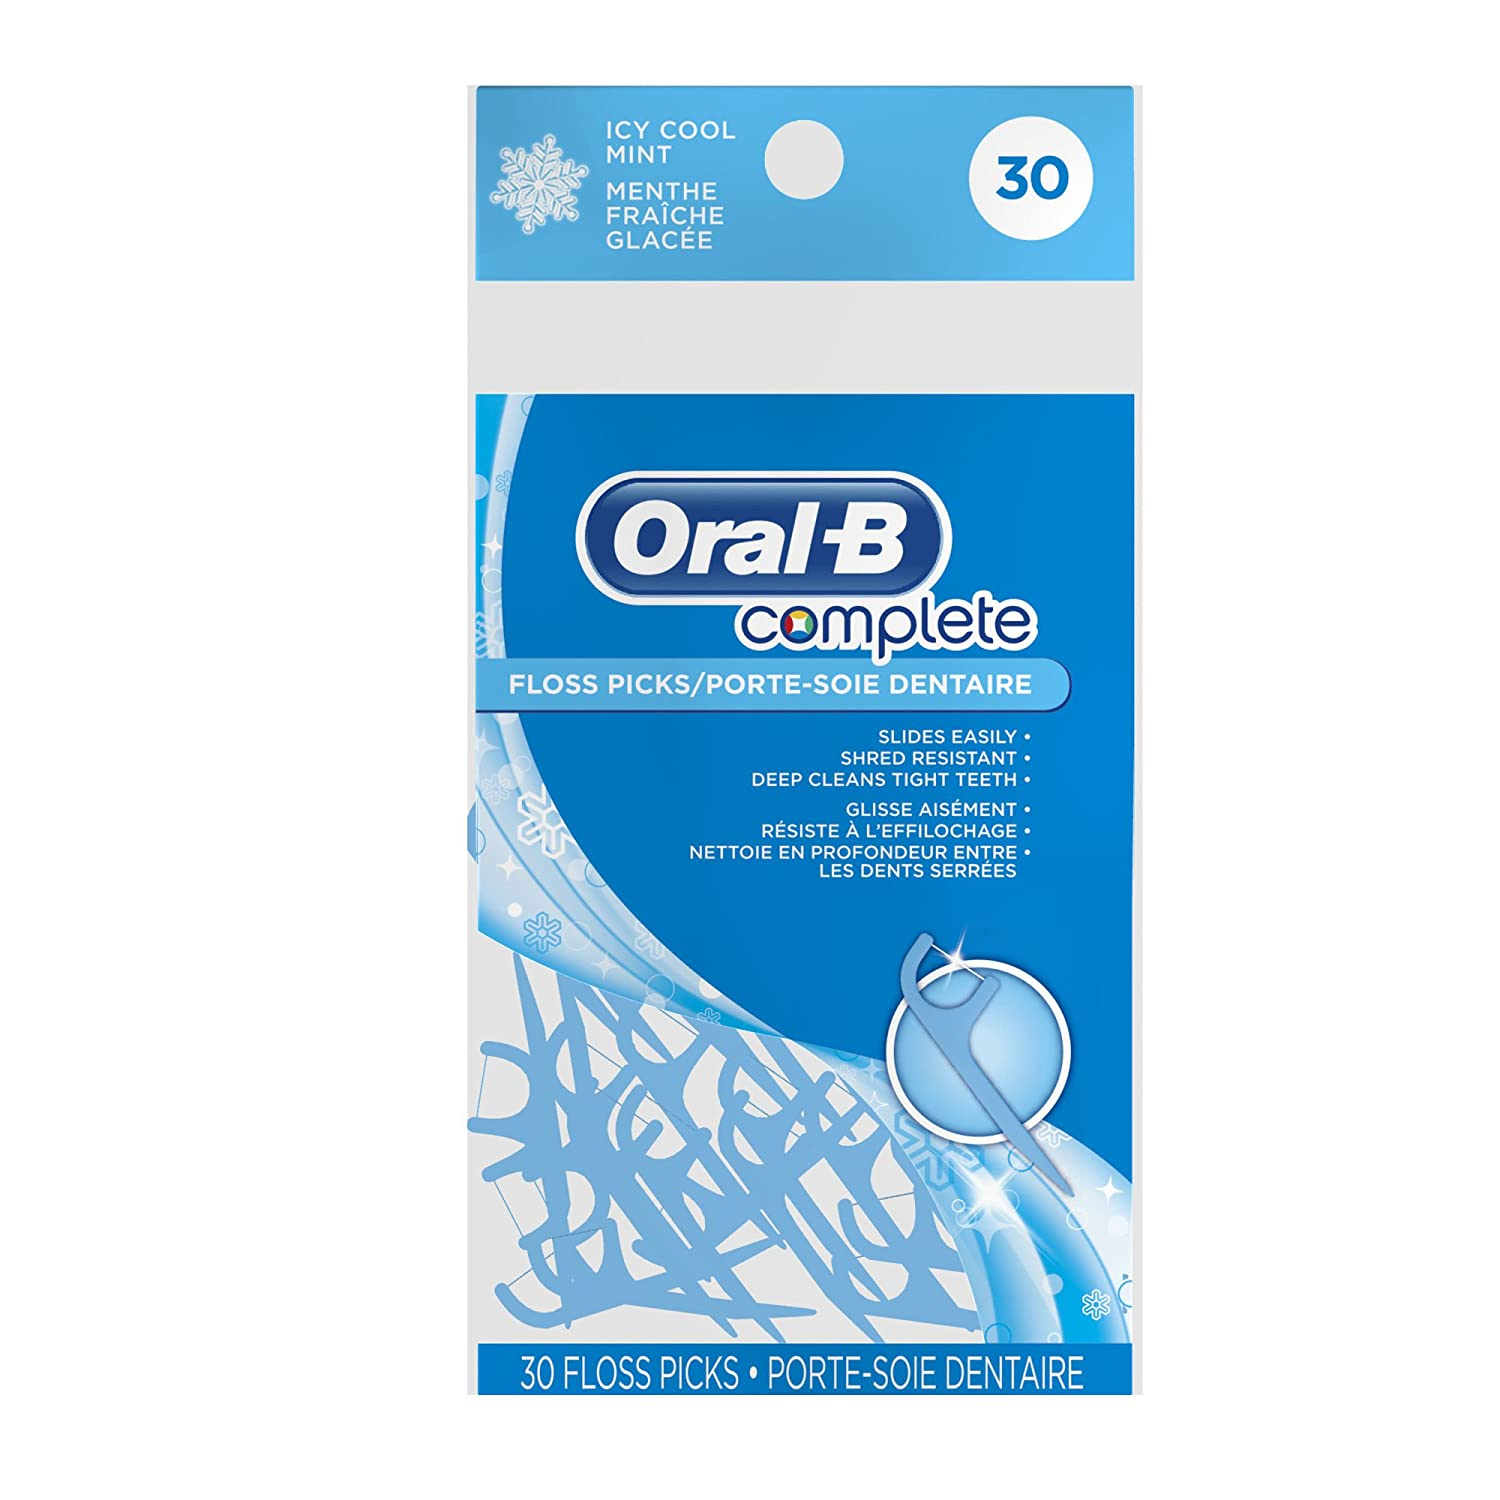 Oral B Complete ICY Cool Mint 30 Floss Picks NEW Perfect Size FOR Travel Purse | eBay